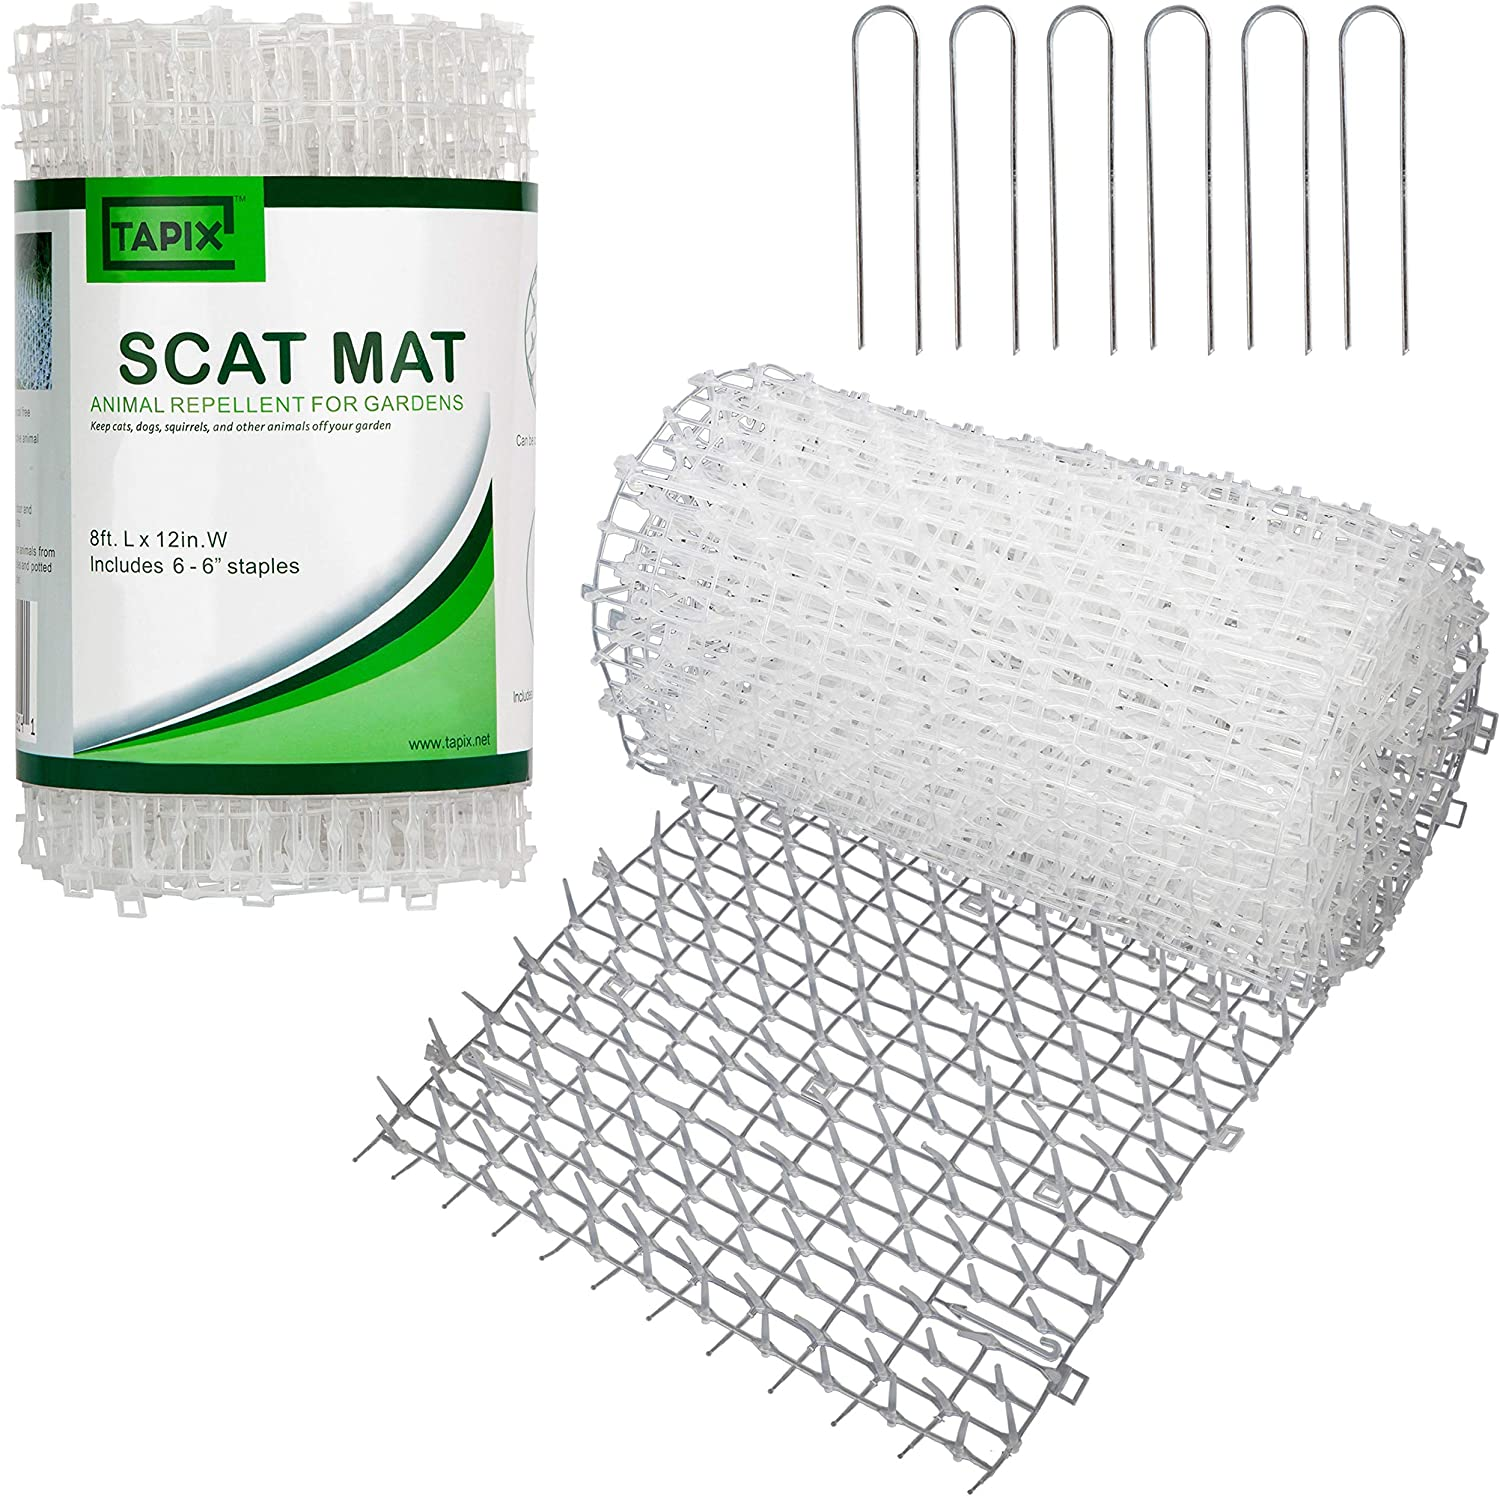 Tapix Cat Scat Mat Clear Anti-cat Network with Spikes Digging Stopper - Cat Deterrent Mat for Indoor and Outdoor 8 feet x 12 feet with 6 Staples